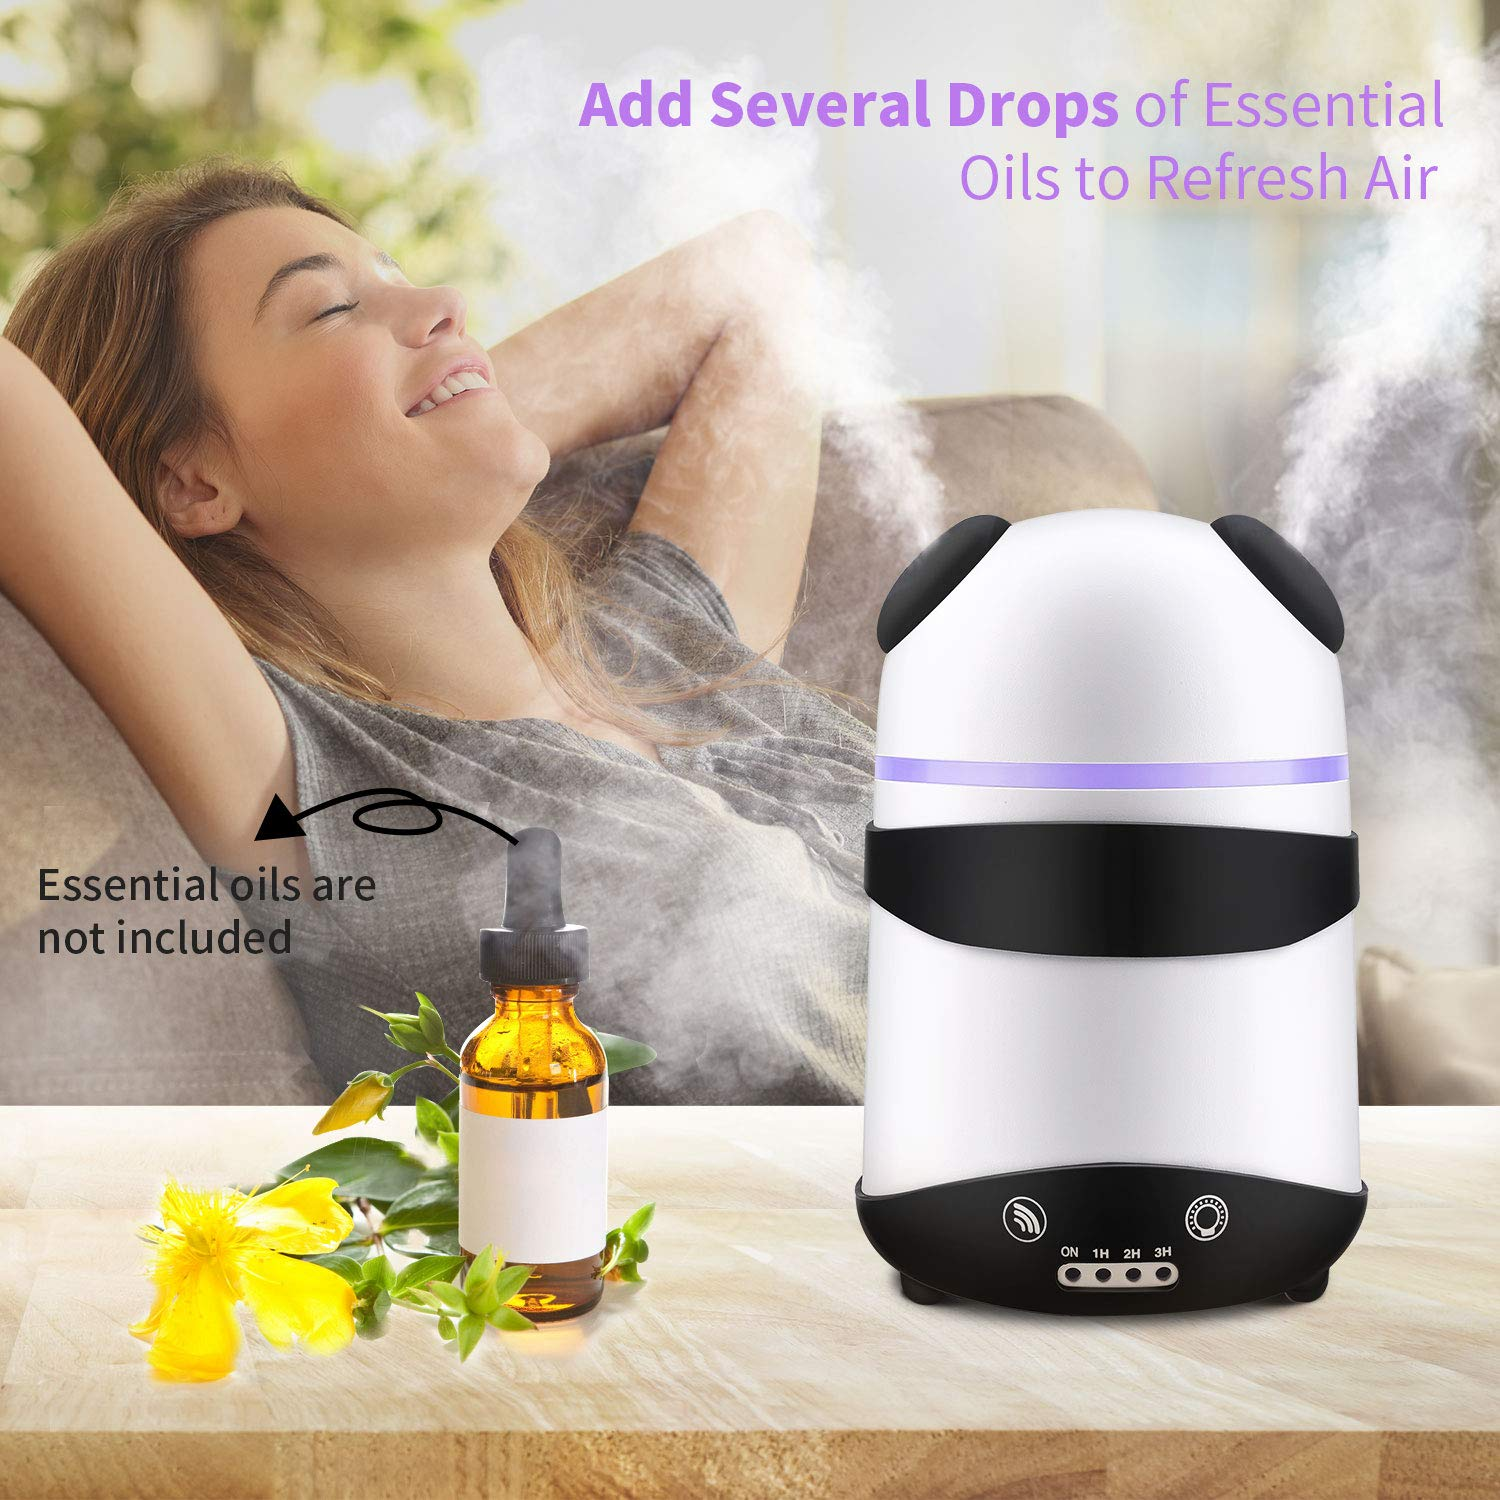 Number-One Essential Oil Diffuser, Dual Spray Safe Waterless Auto Shut-off Aromatherapy Diffuser Timer 7 Colors LED Night Lights Ultrasonic Humidifier Home Office Bedroom Baby Women (Black) by Number-One (Image #3)